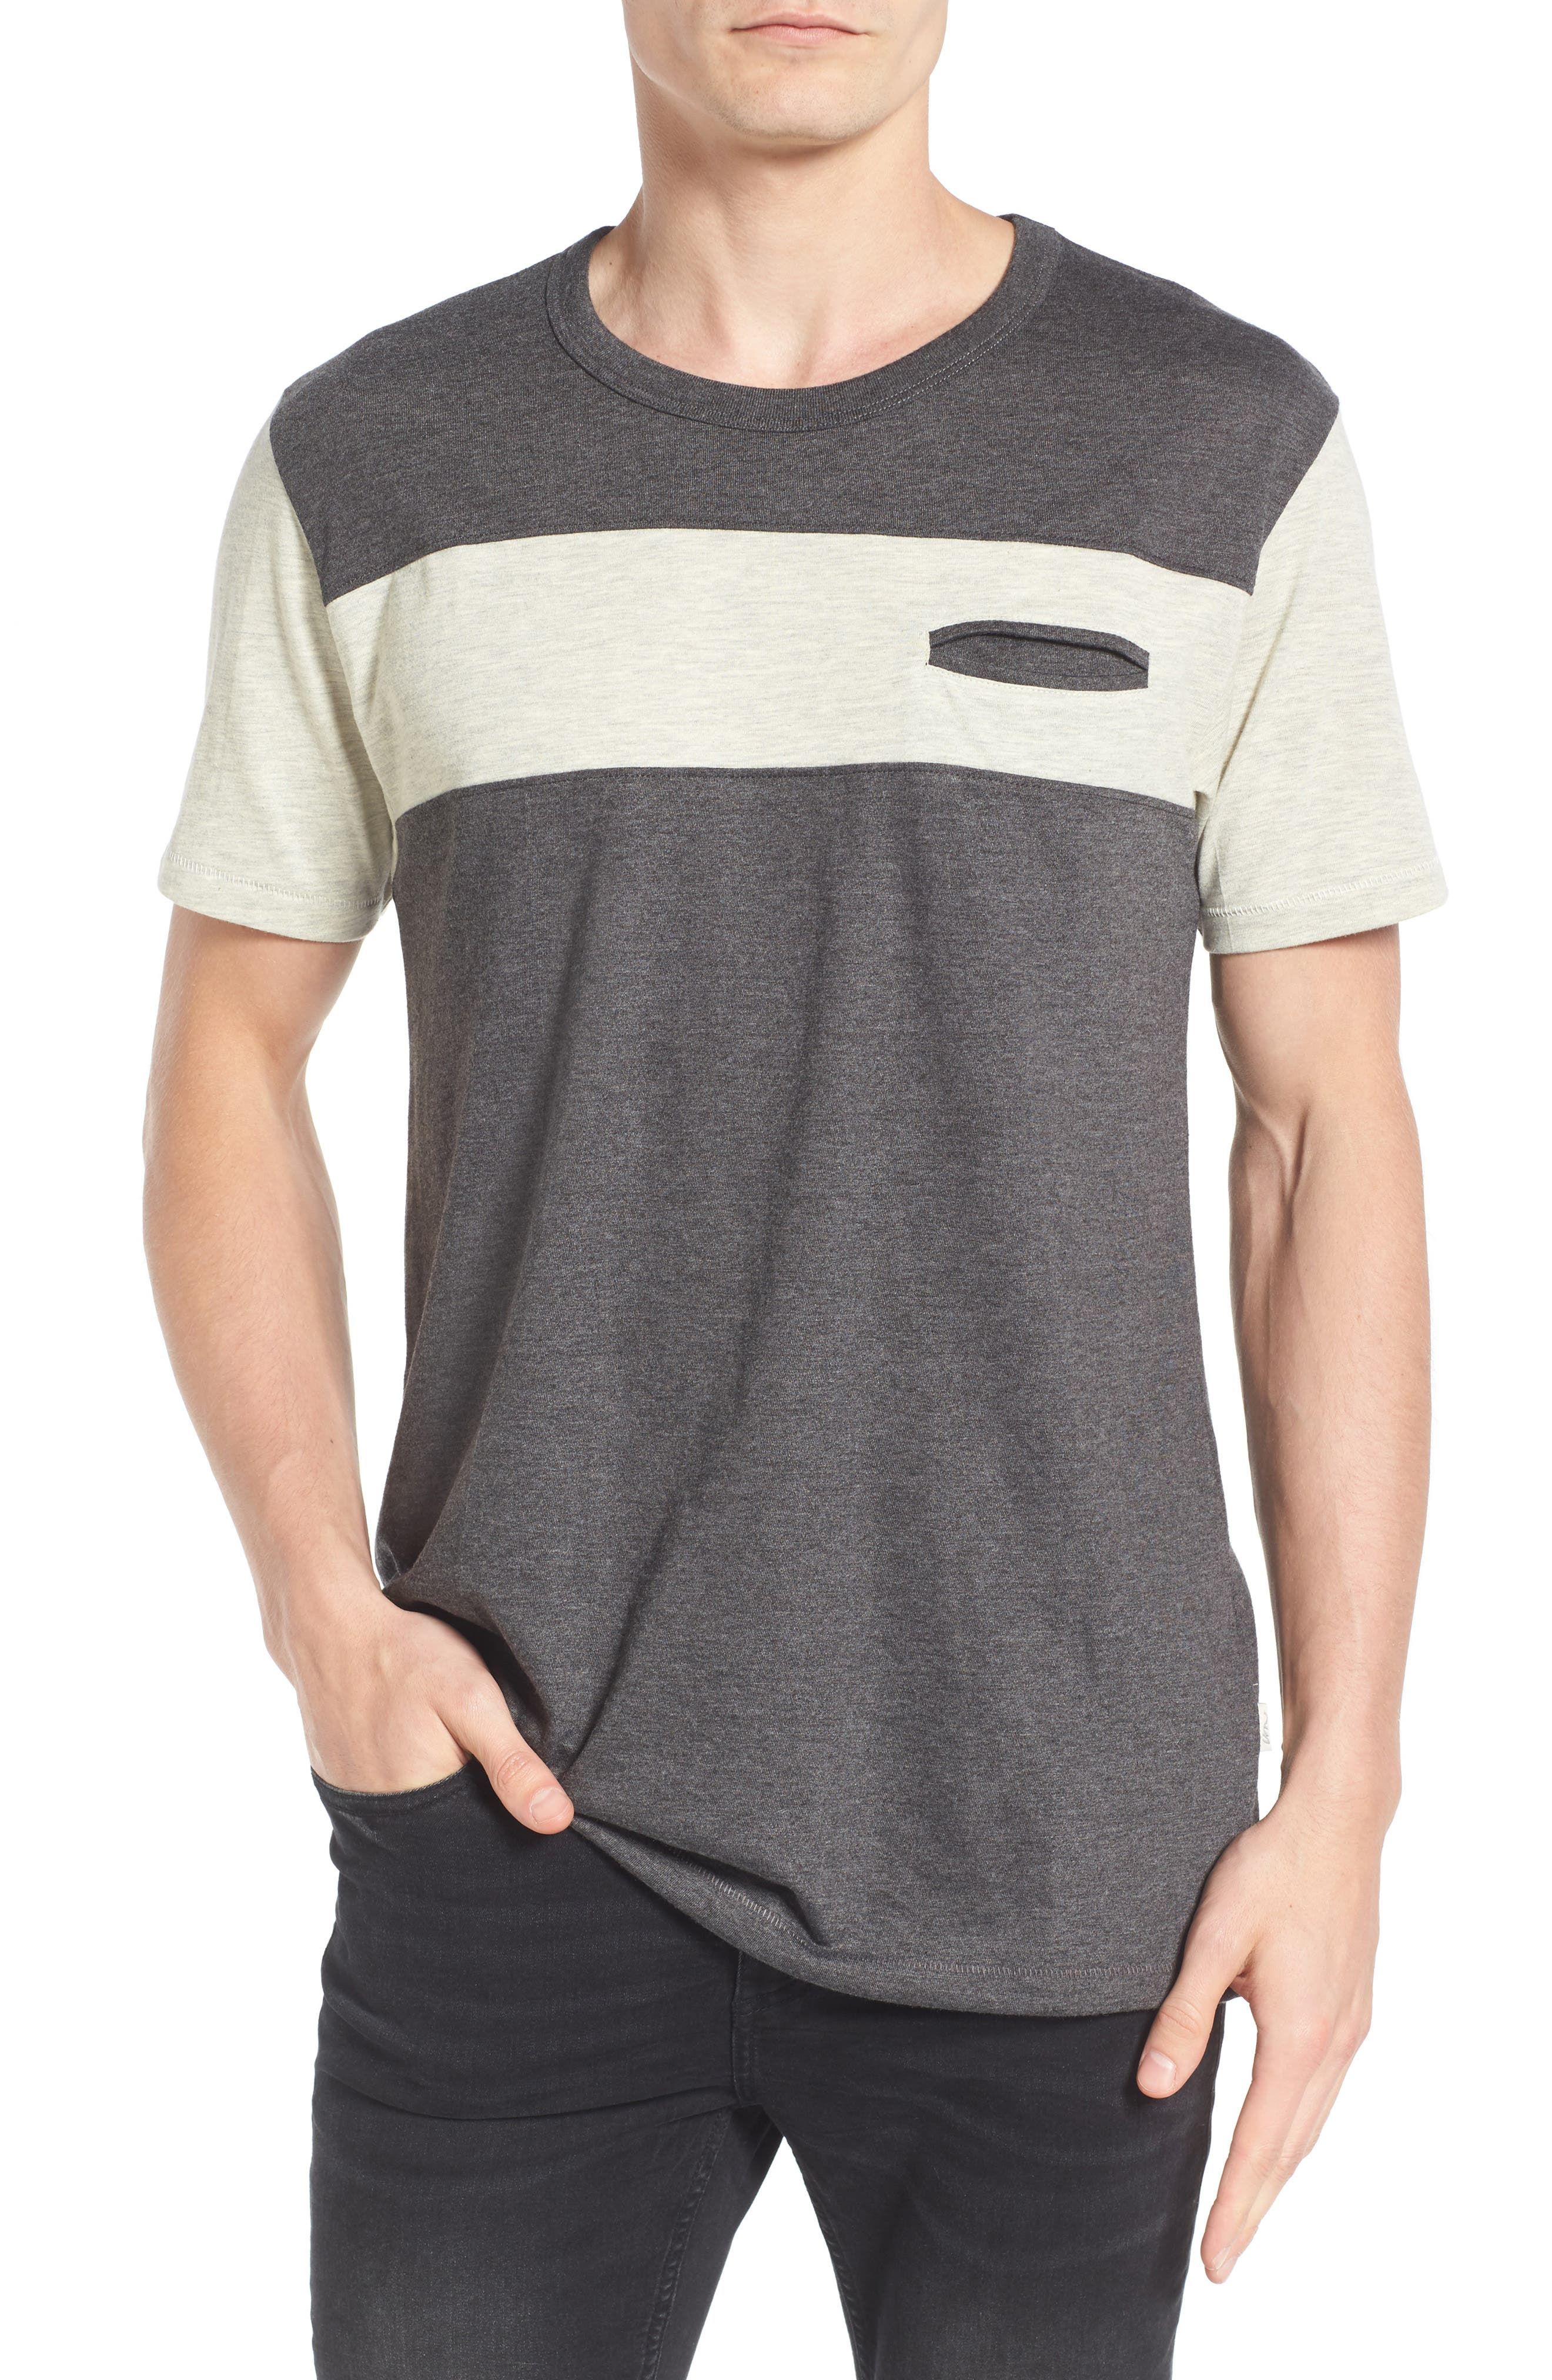 Imperial Motion Nelson Pocket T-Shirt